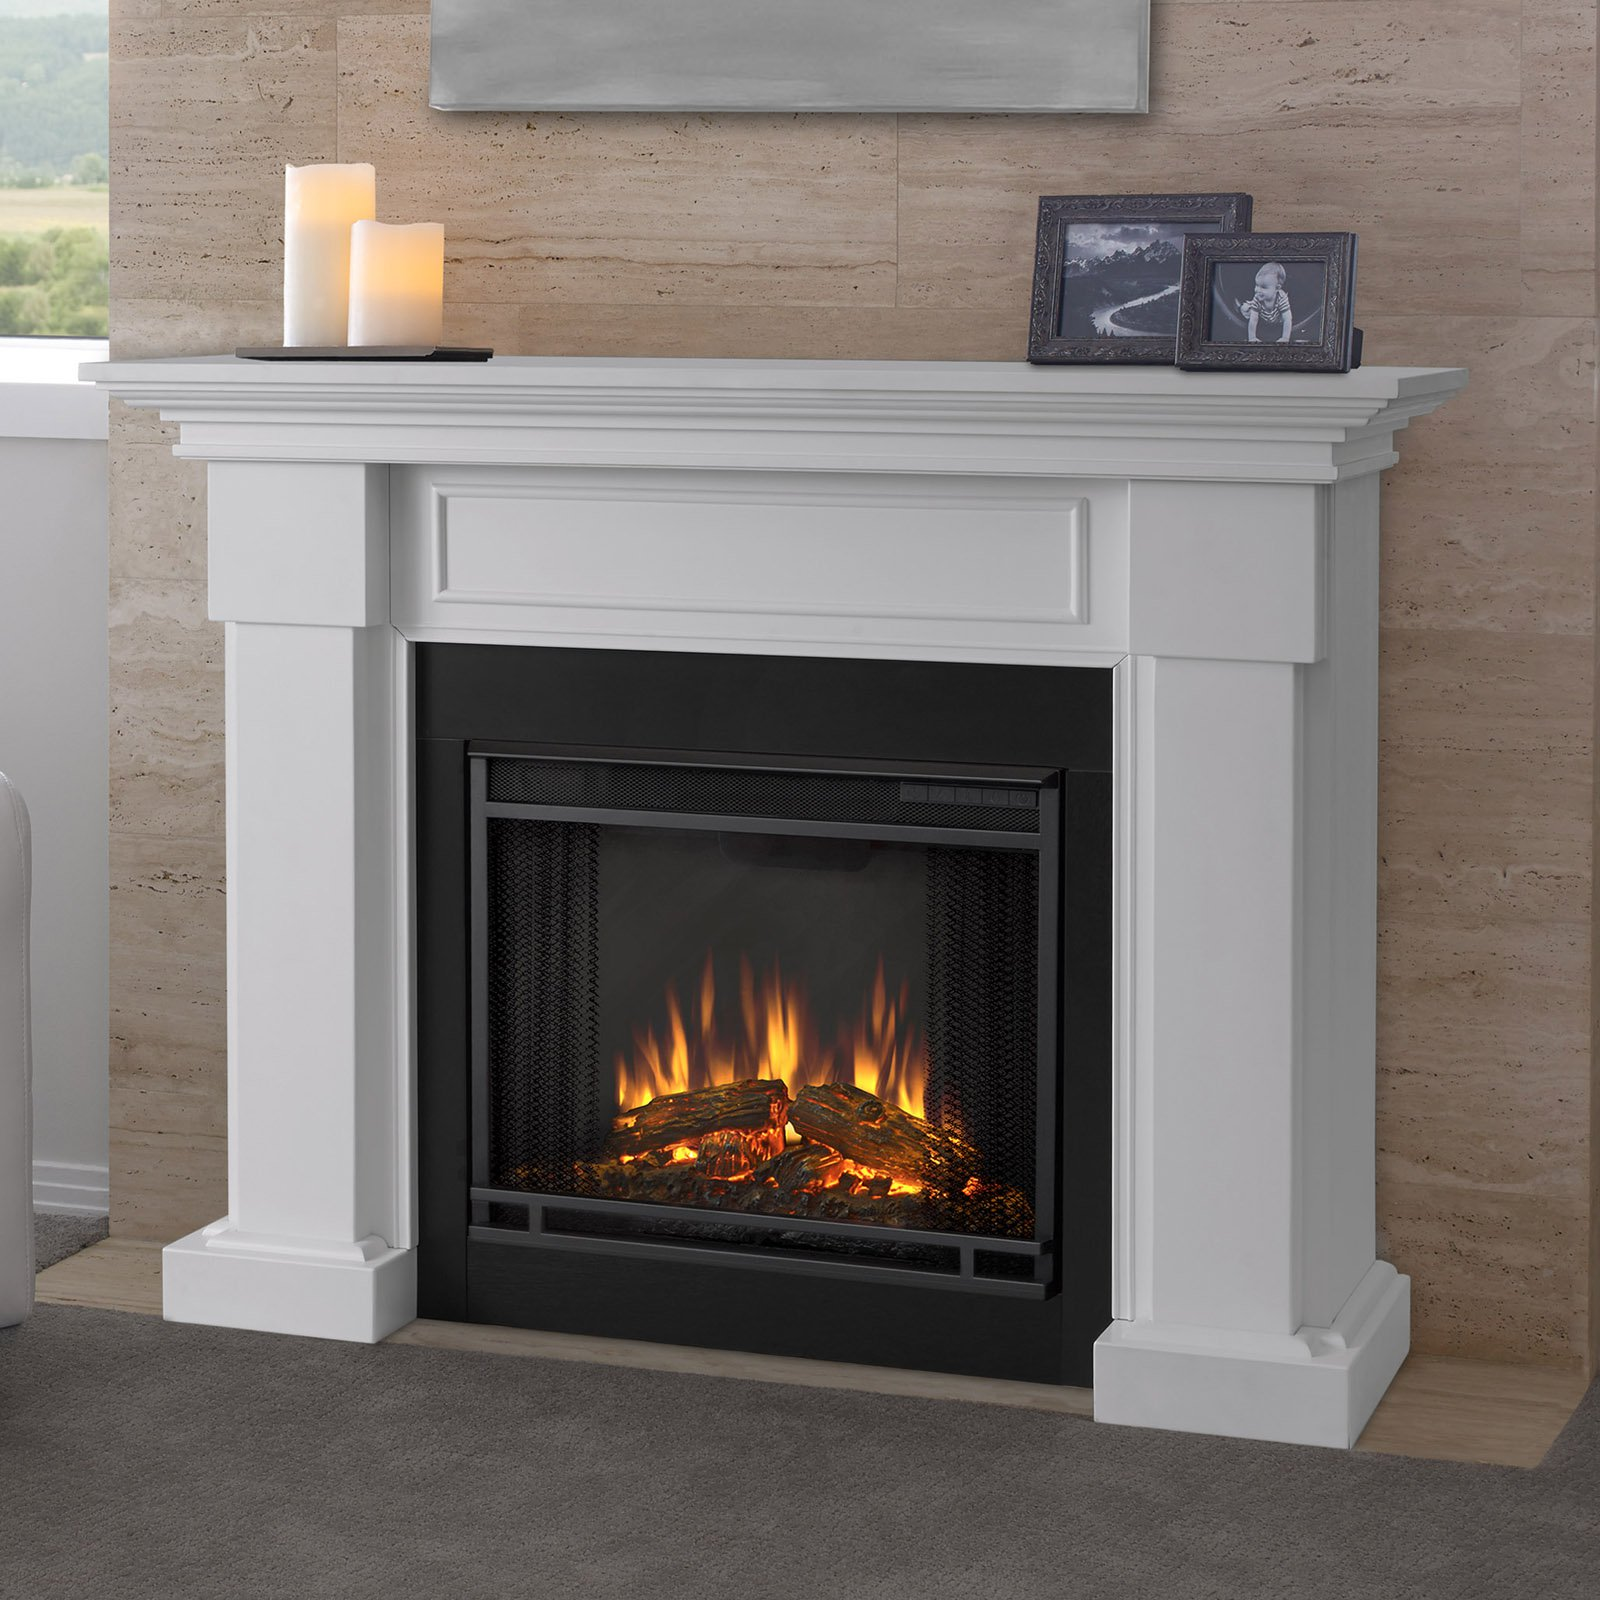 Free Shipping. Buy Real Flame Hillcrest Electric Fireplace at Walmart.com